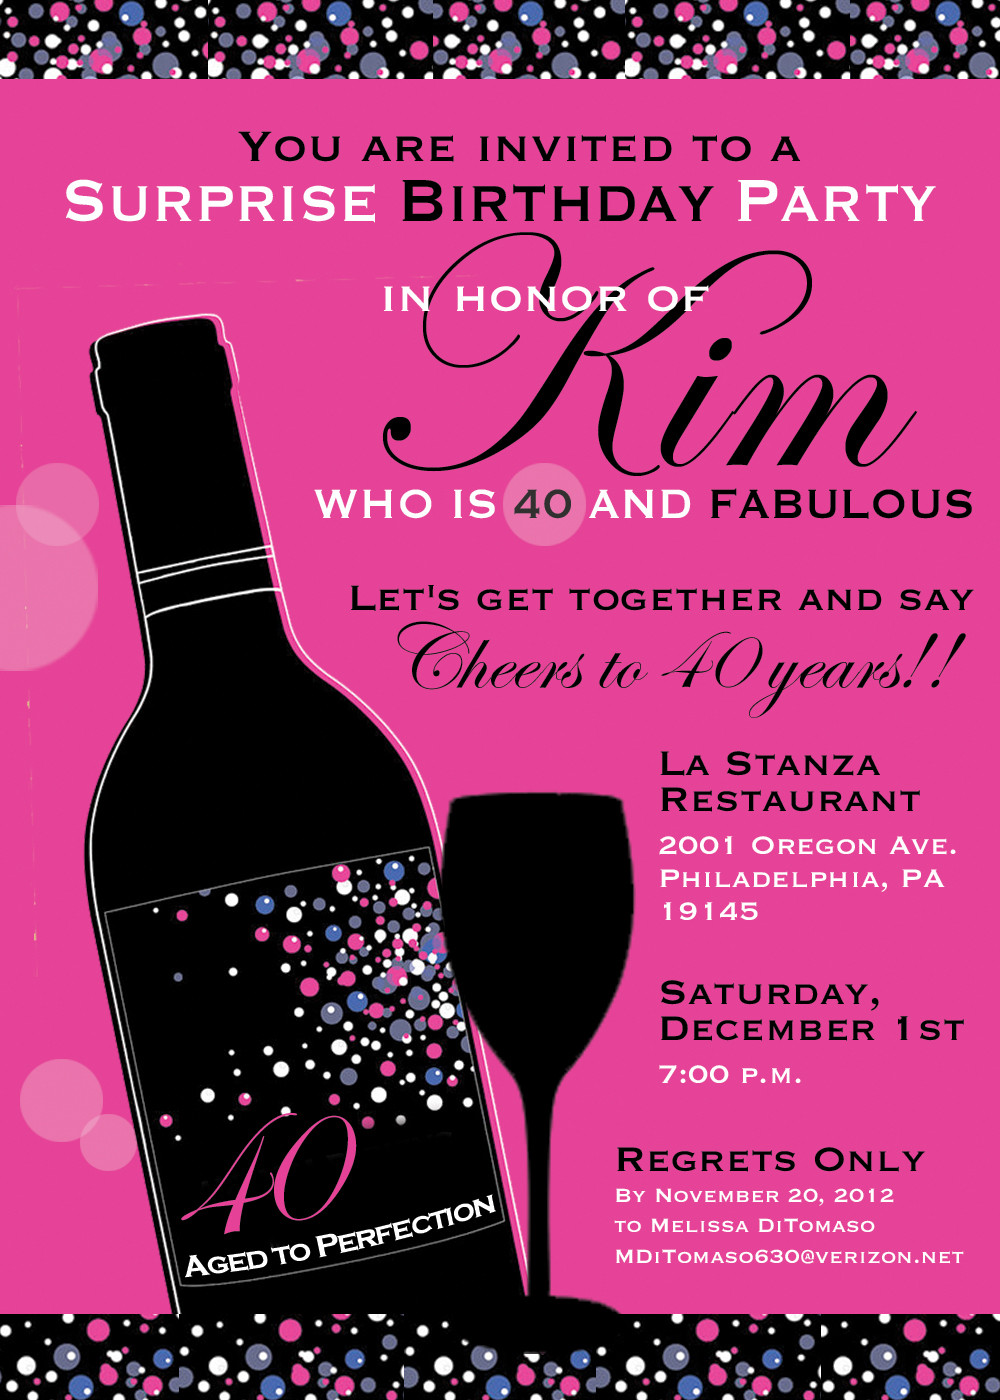 Best ideas about Design Birthday Invitations . Save or Pin Birthday Now.